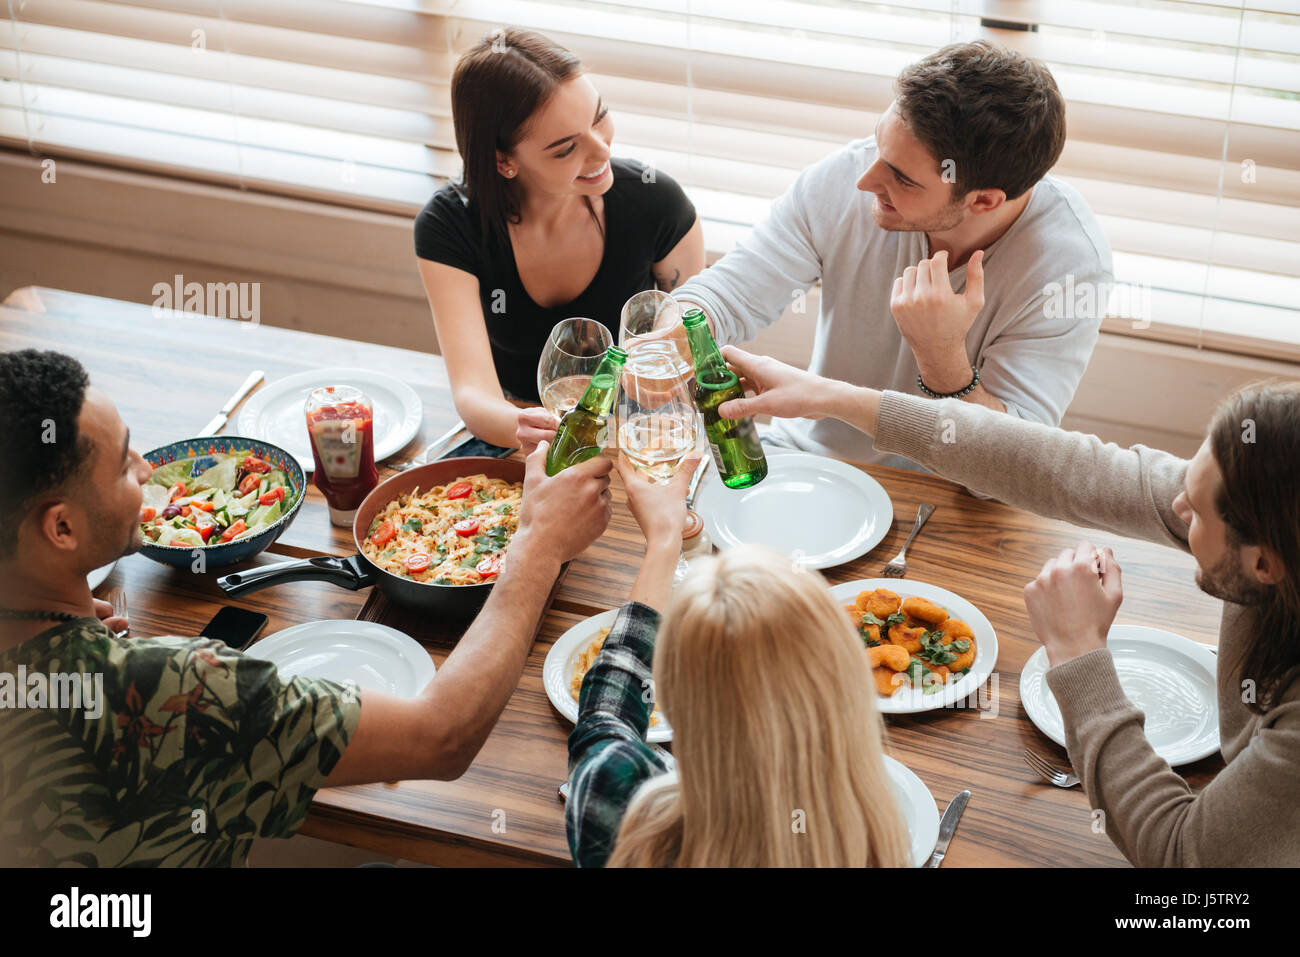 Top view of group of people clinking glasses and bottles at the table at home - Stock Image